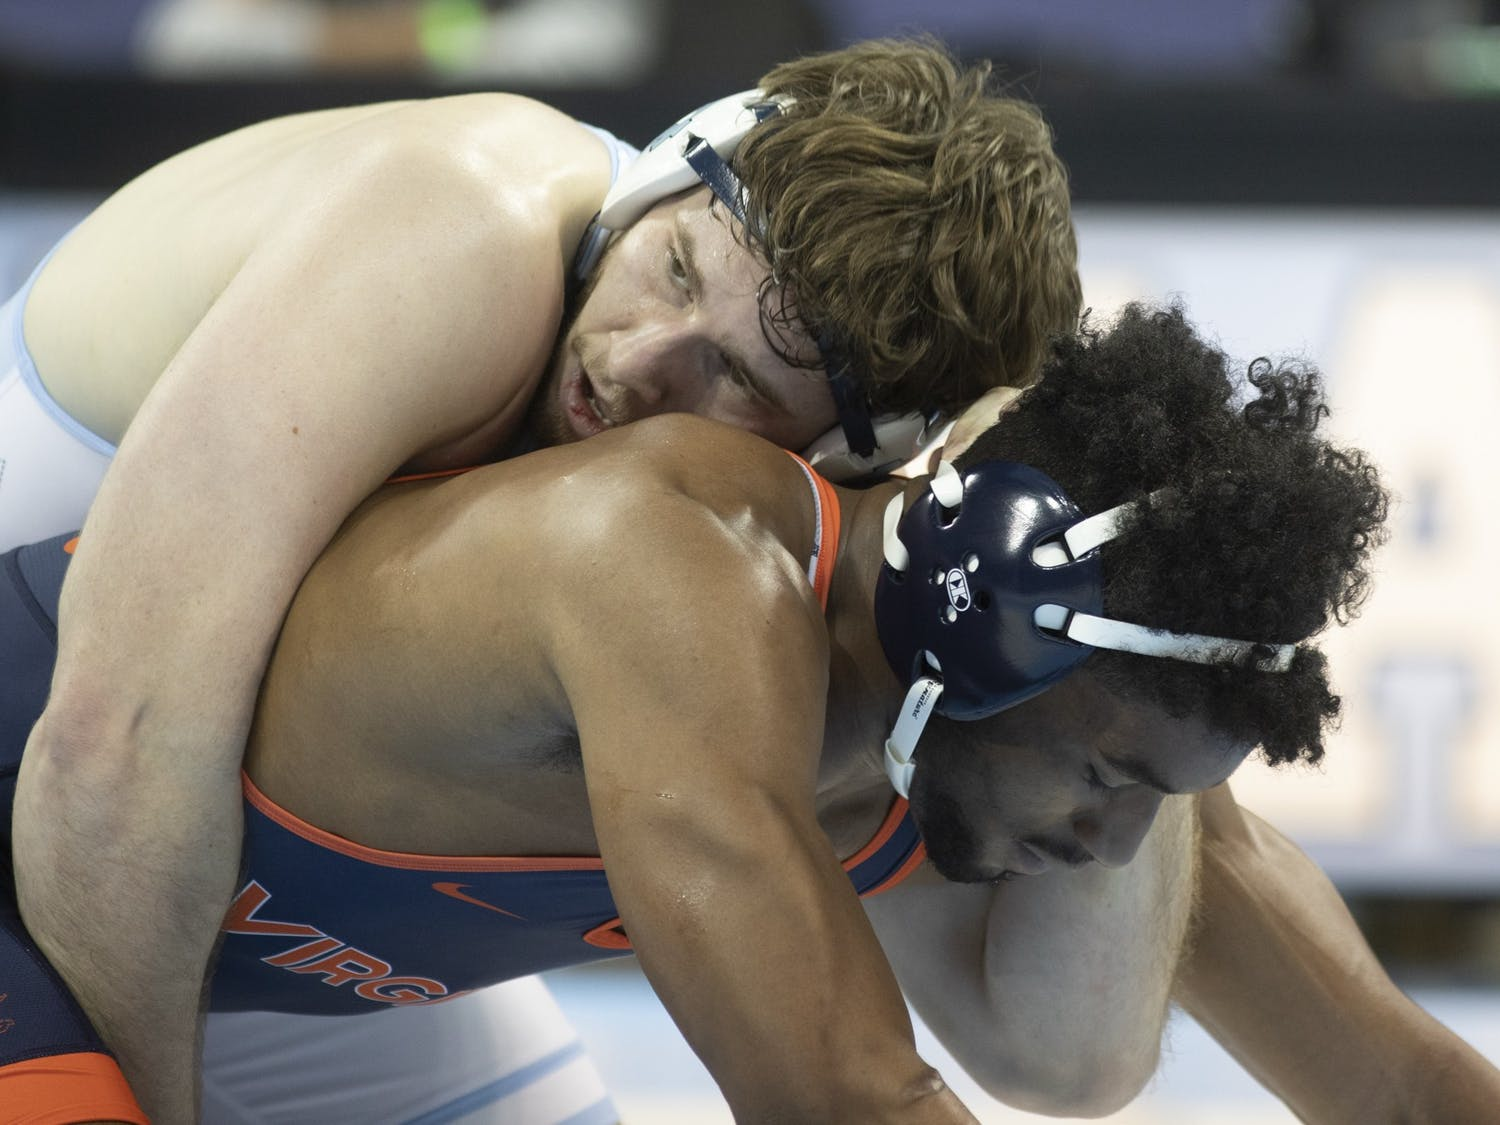 Andrew Gunning wrestles against UVA's Ethan Weatherspoon in the 285 lbs weight division in Carmichael Arena on Feb. 13, 2021. Gunning won his match and UNC won overall, 25-9.